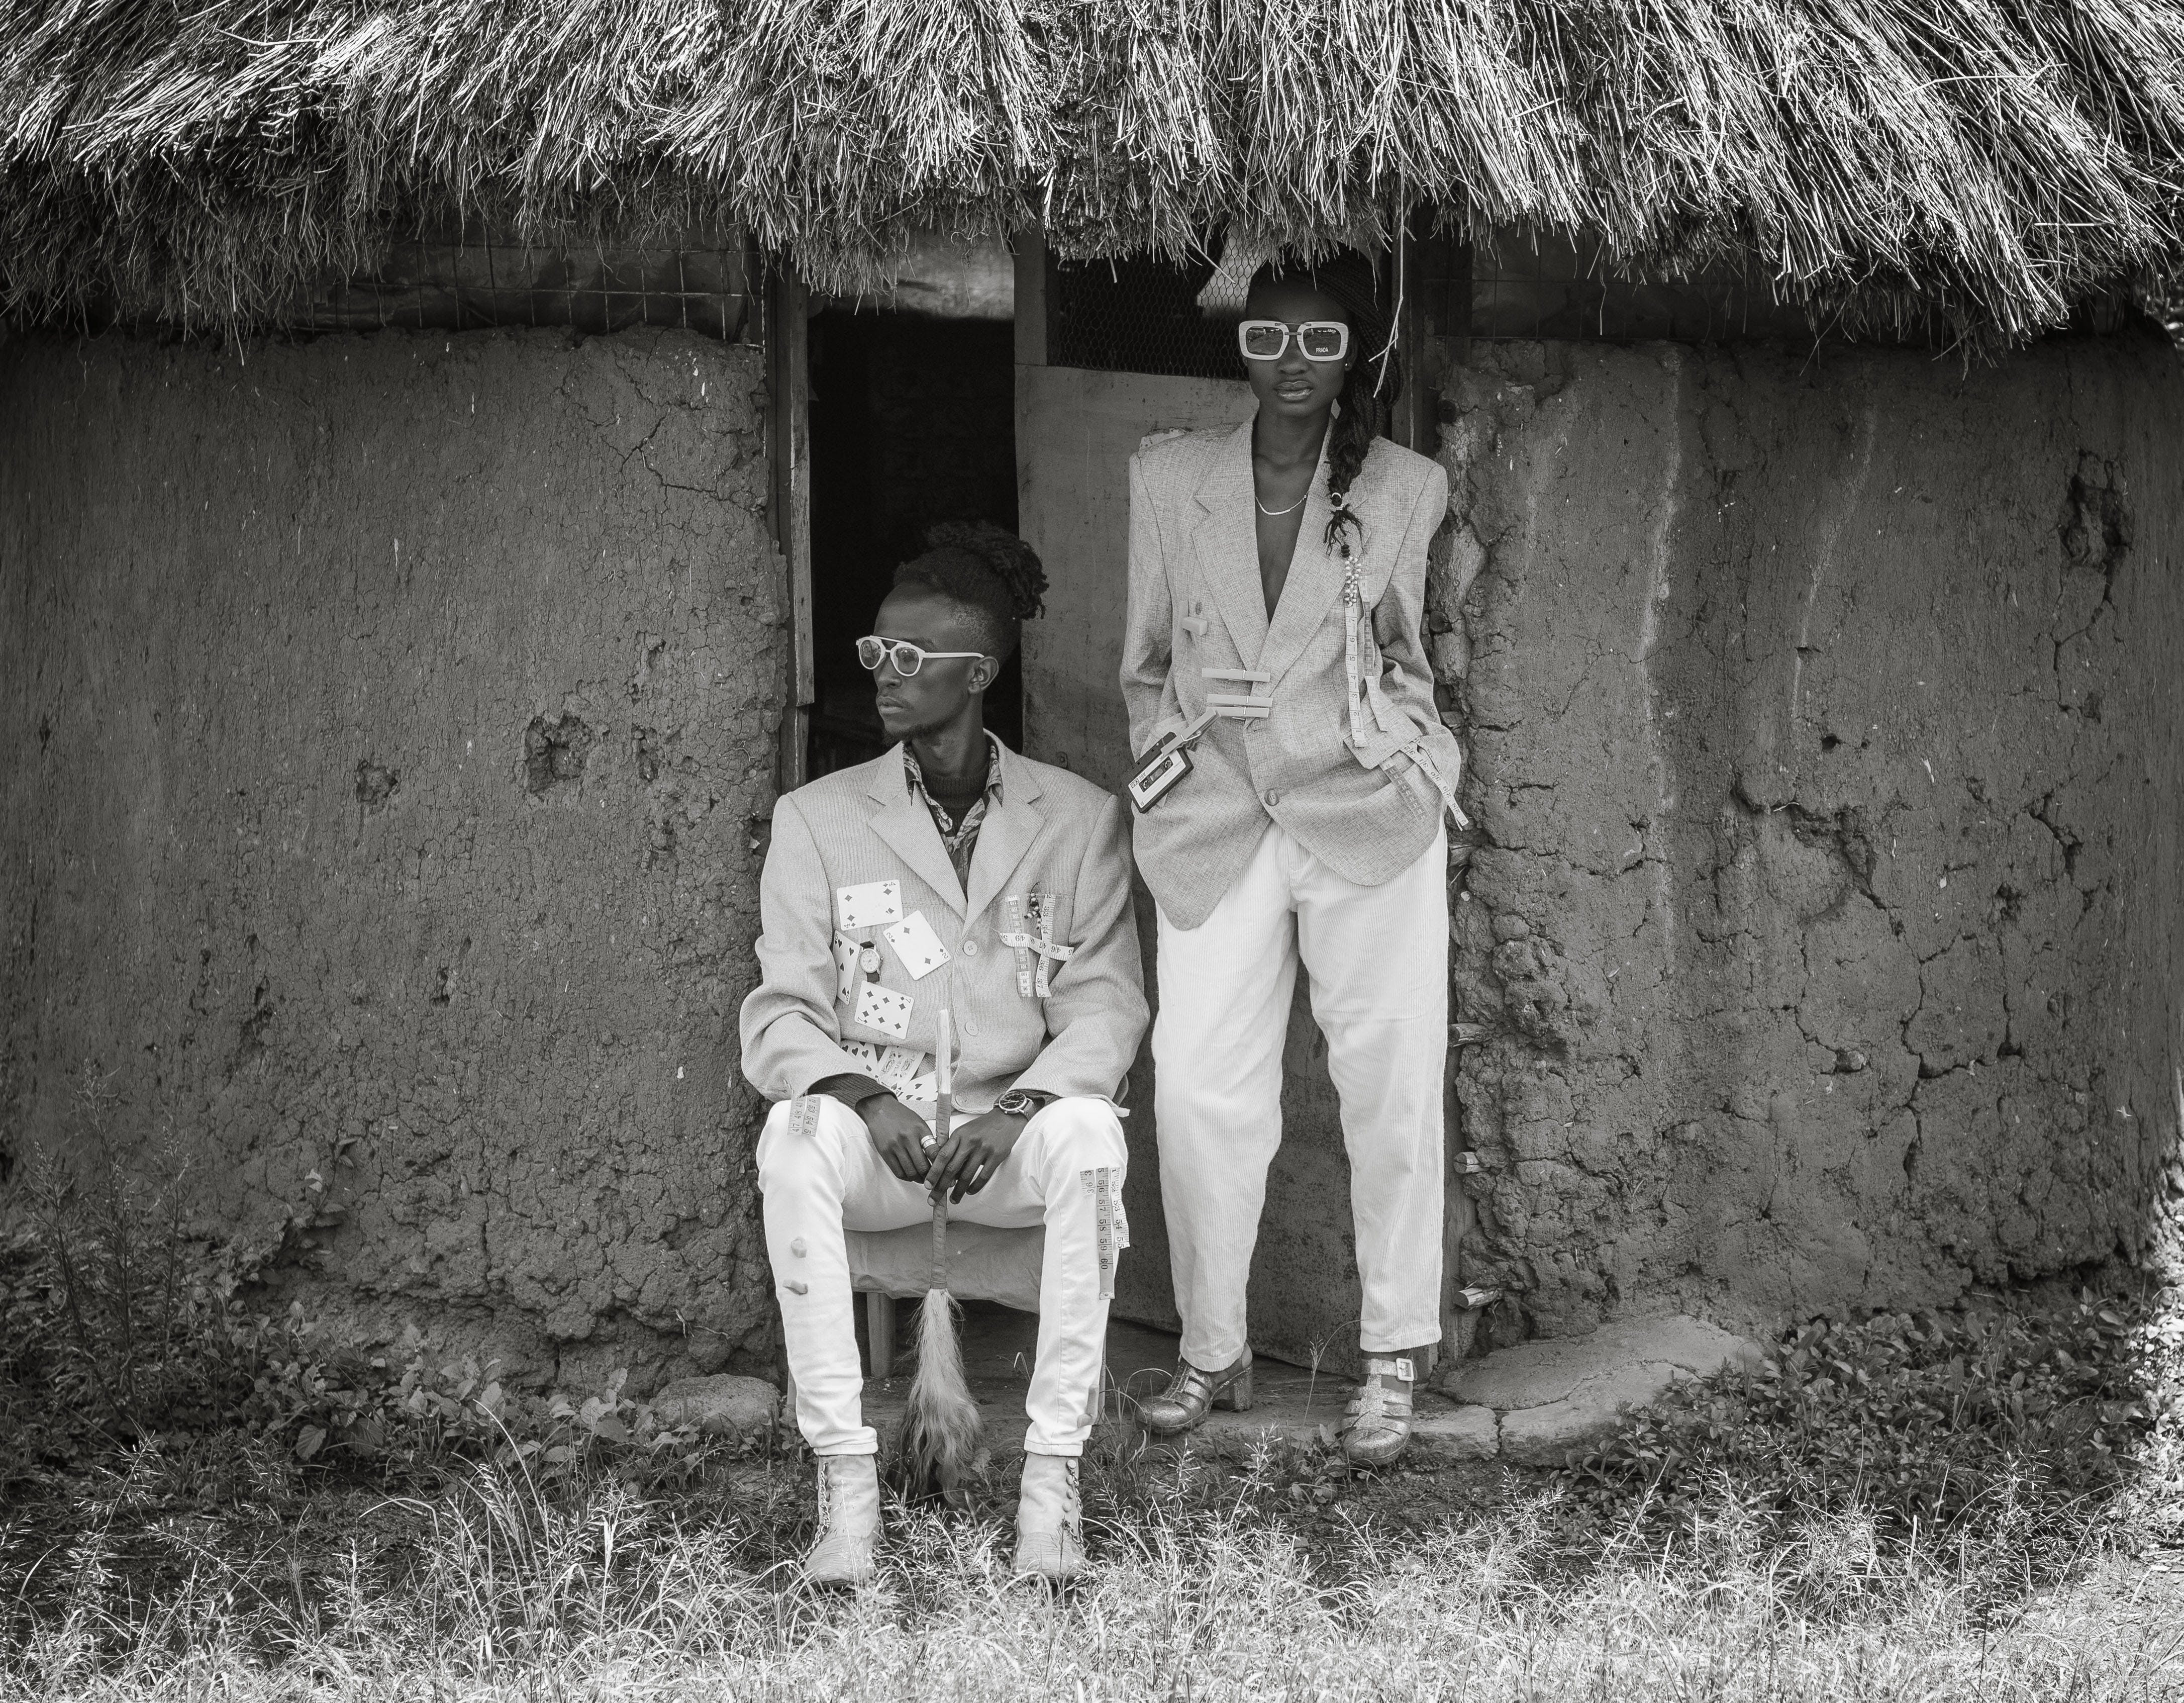 Grayscale Photo of Man and Woman Wearing Suit Beside Concrete House